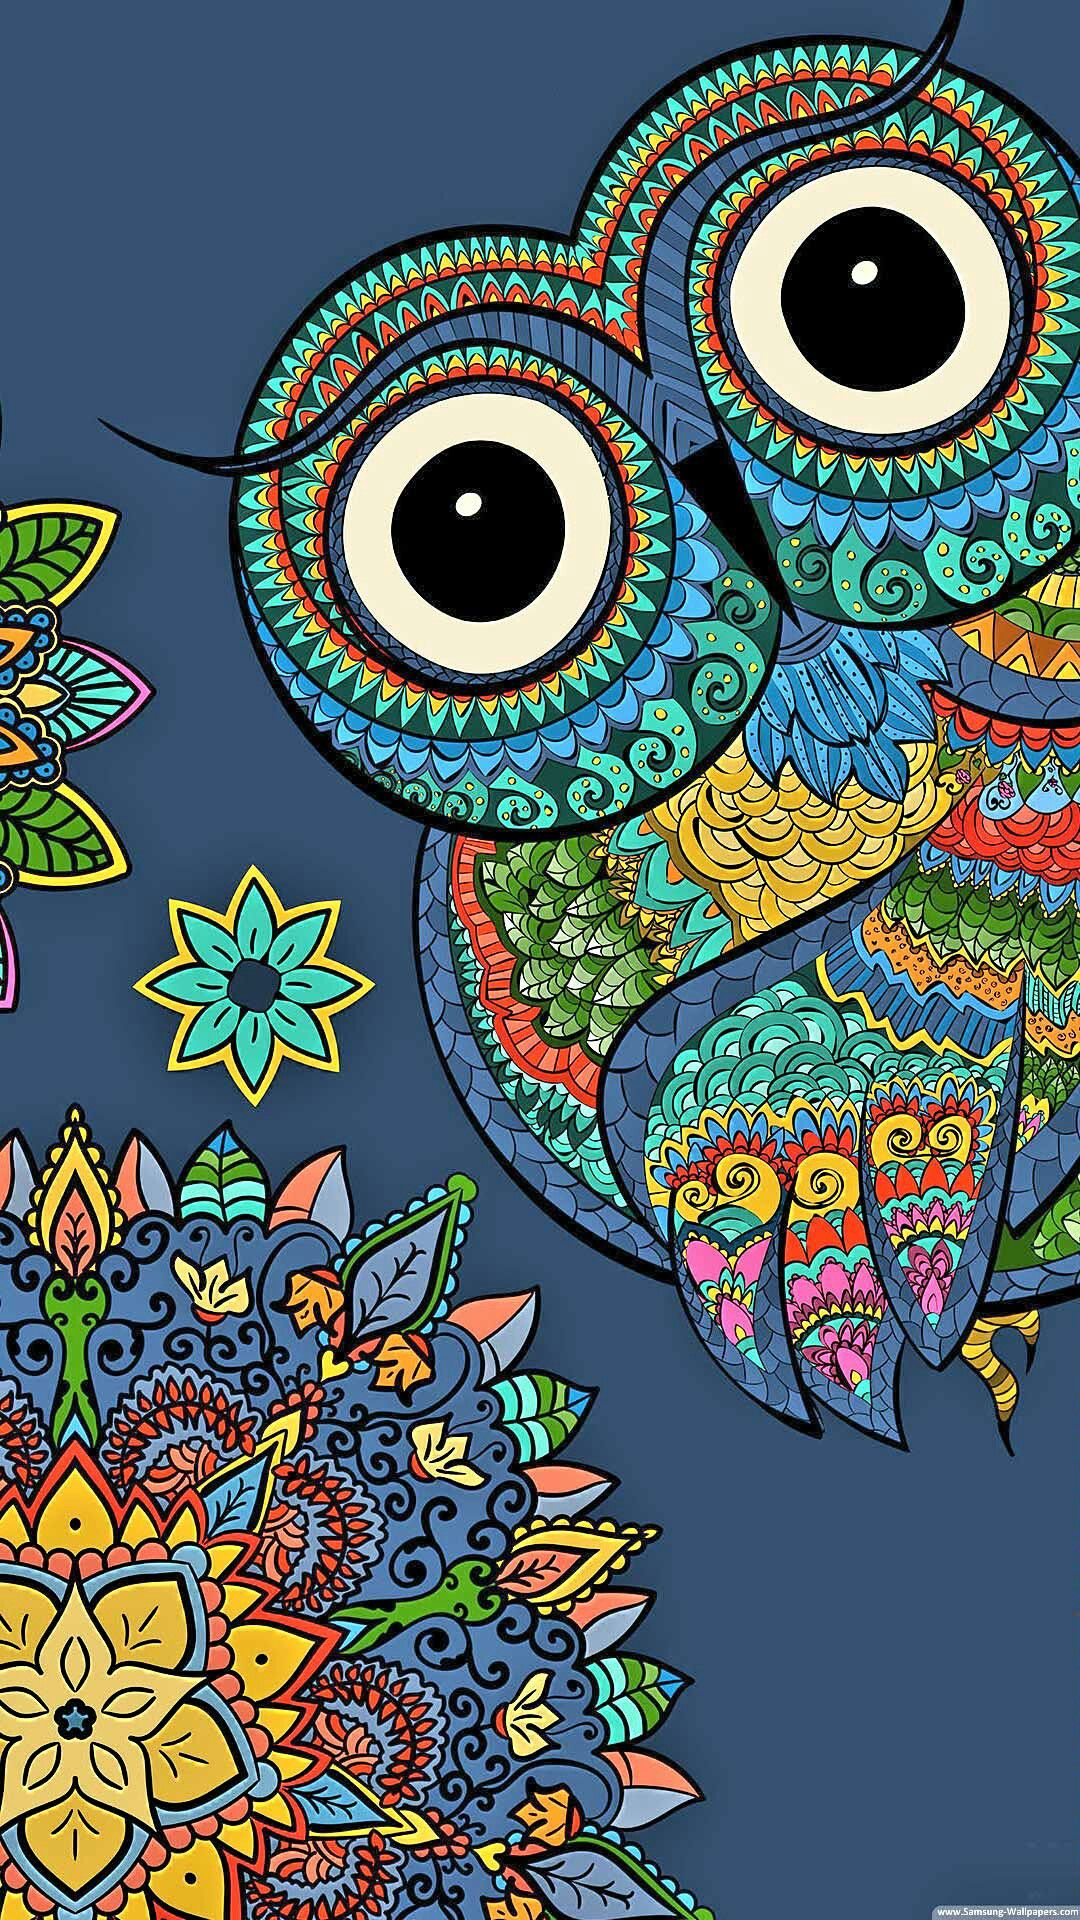 Pin By Sandy On Owl Cute Owls Wallpaper Owl Wallpaper